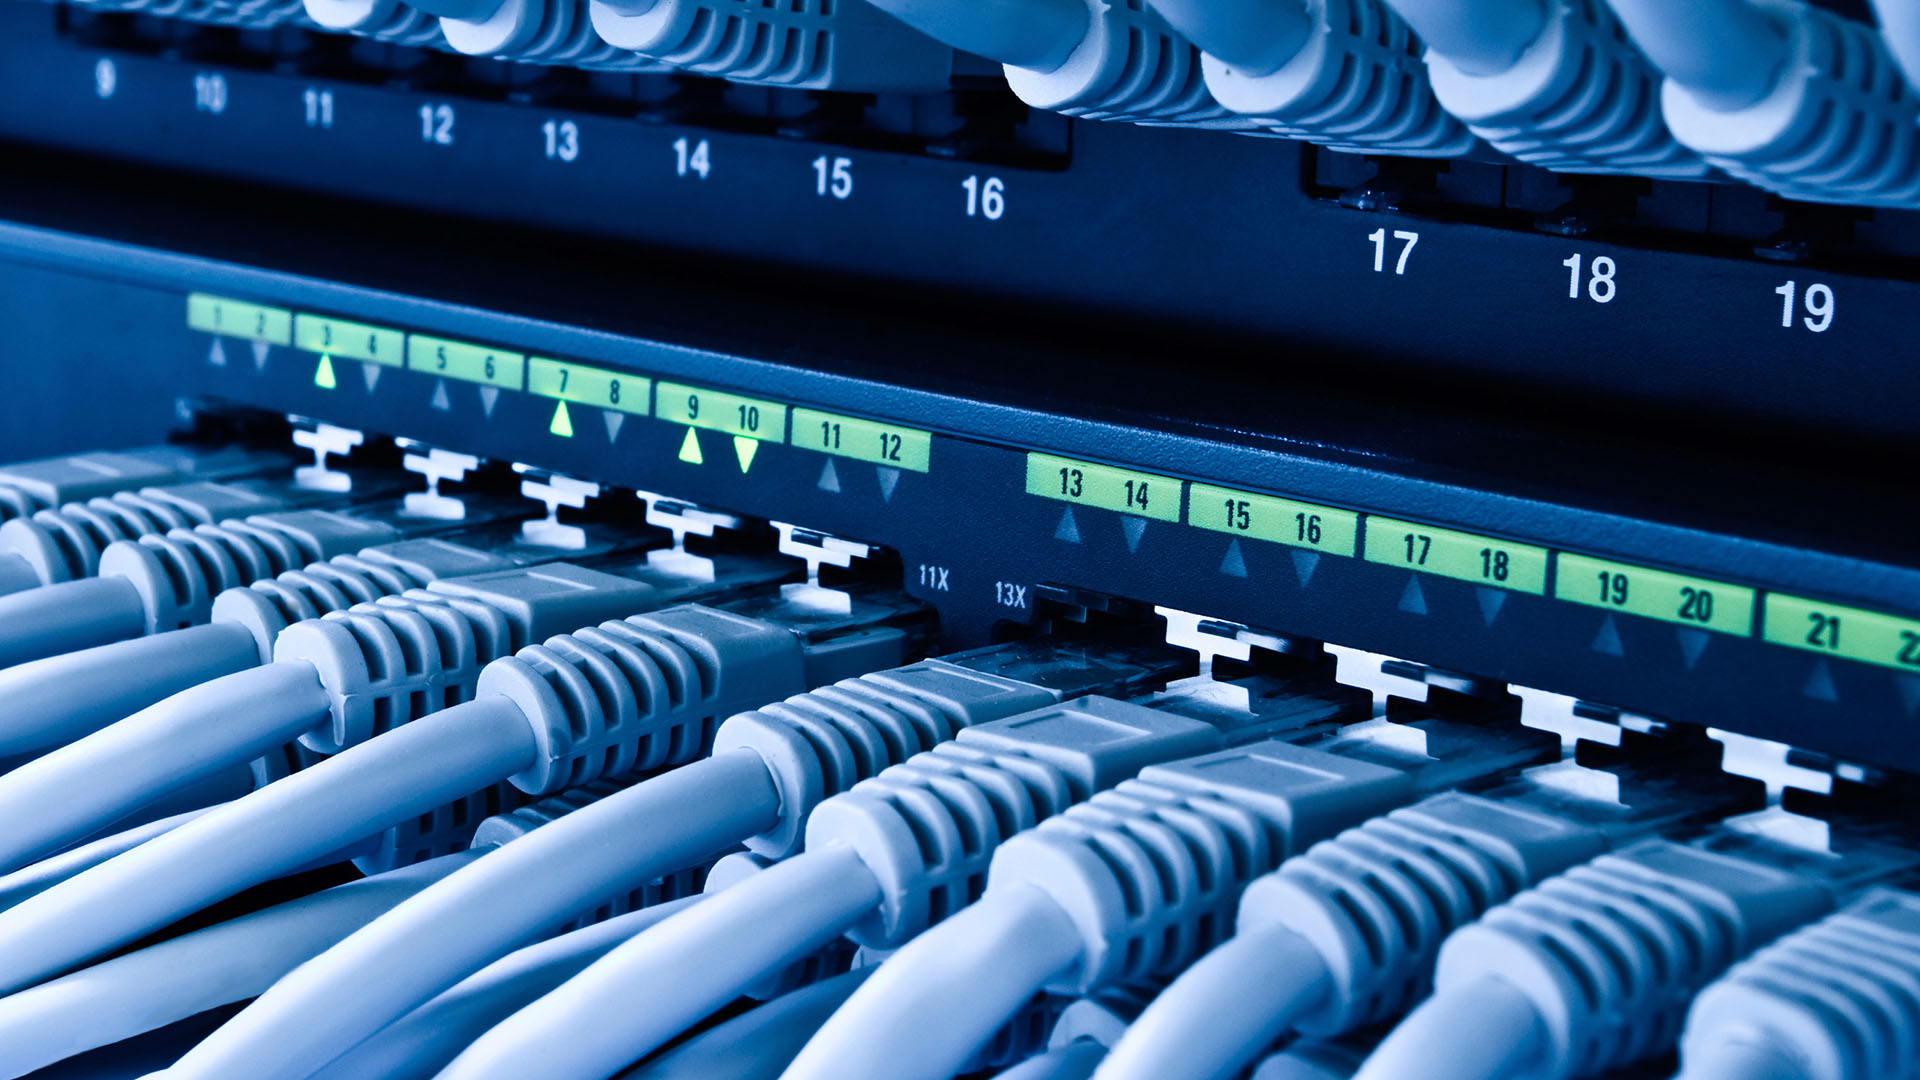 Kissimmee Florida Premier Voice & Data Network Cabling Provider